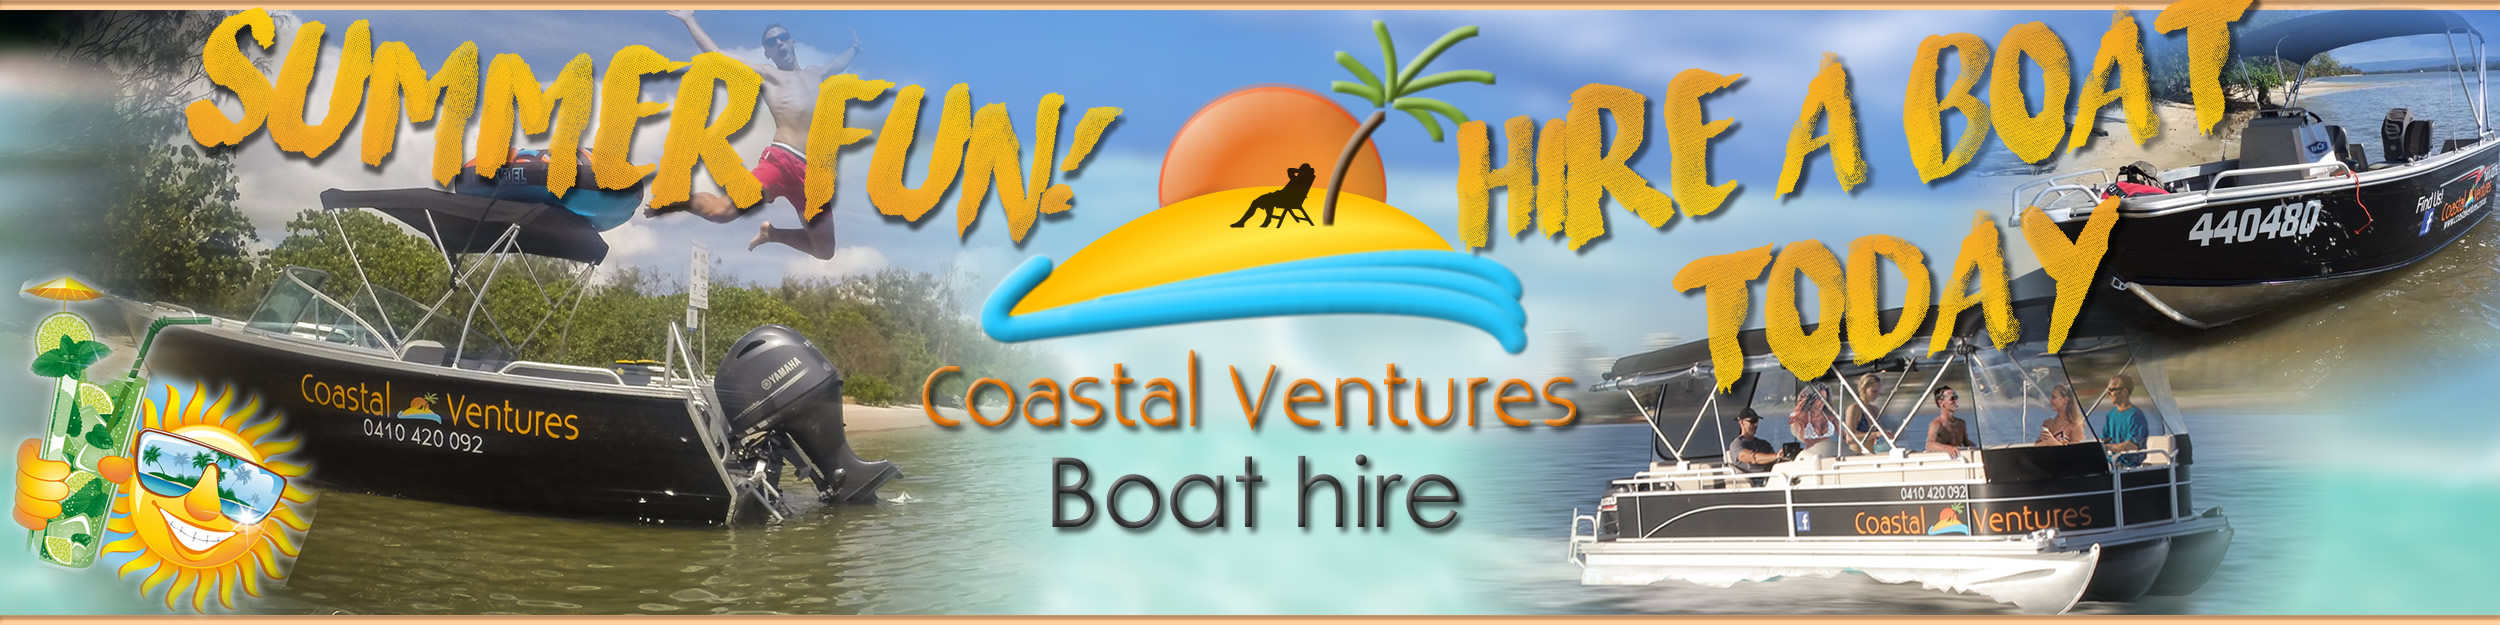 Coastal Ventures Boat Hire